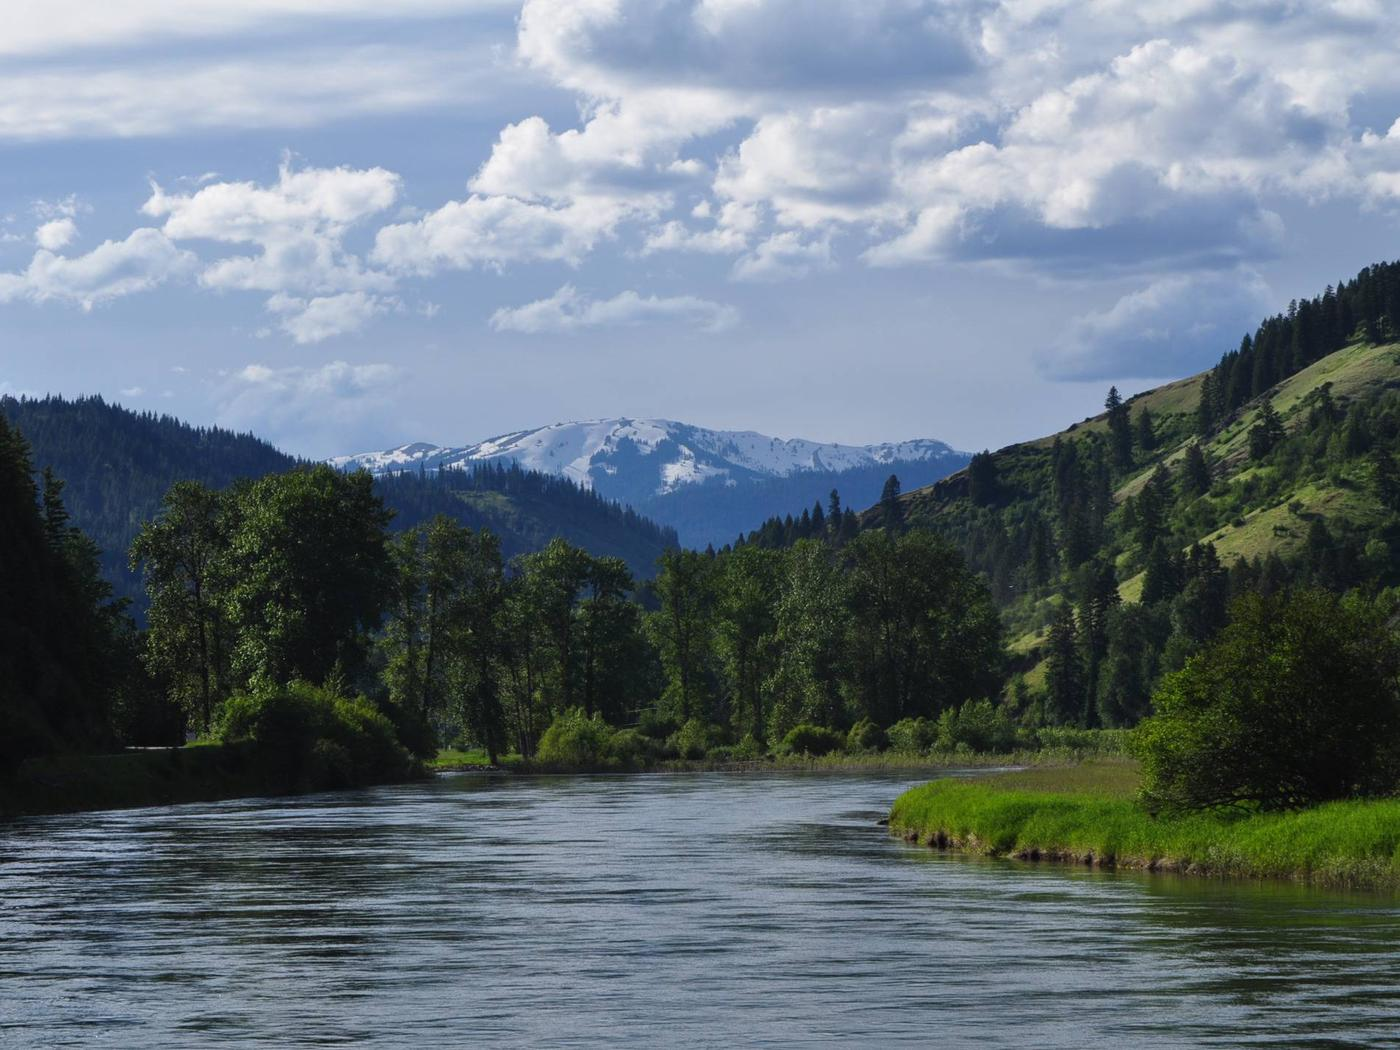 St Joe River, Idaho Panhandle National Forests